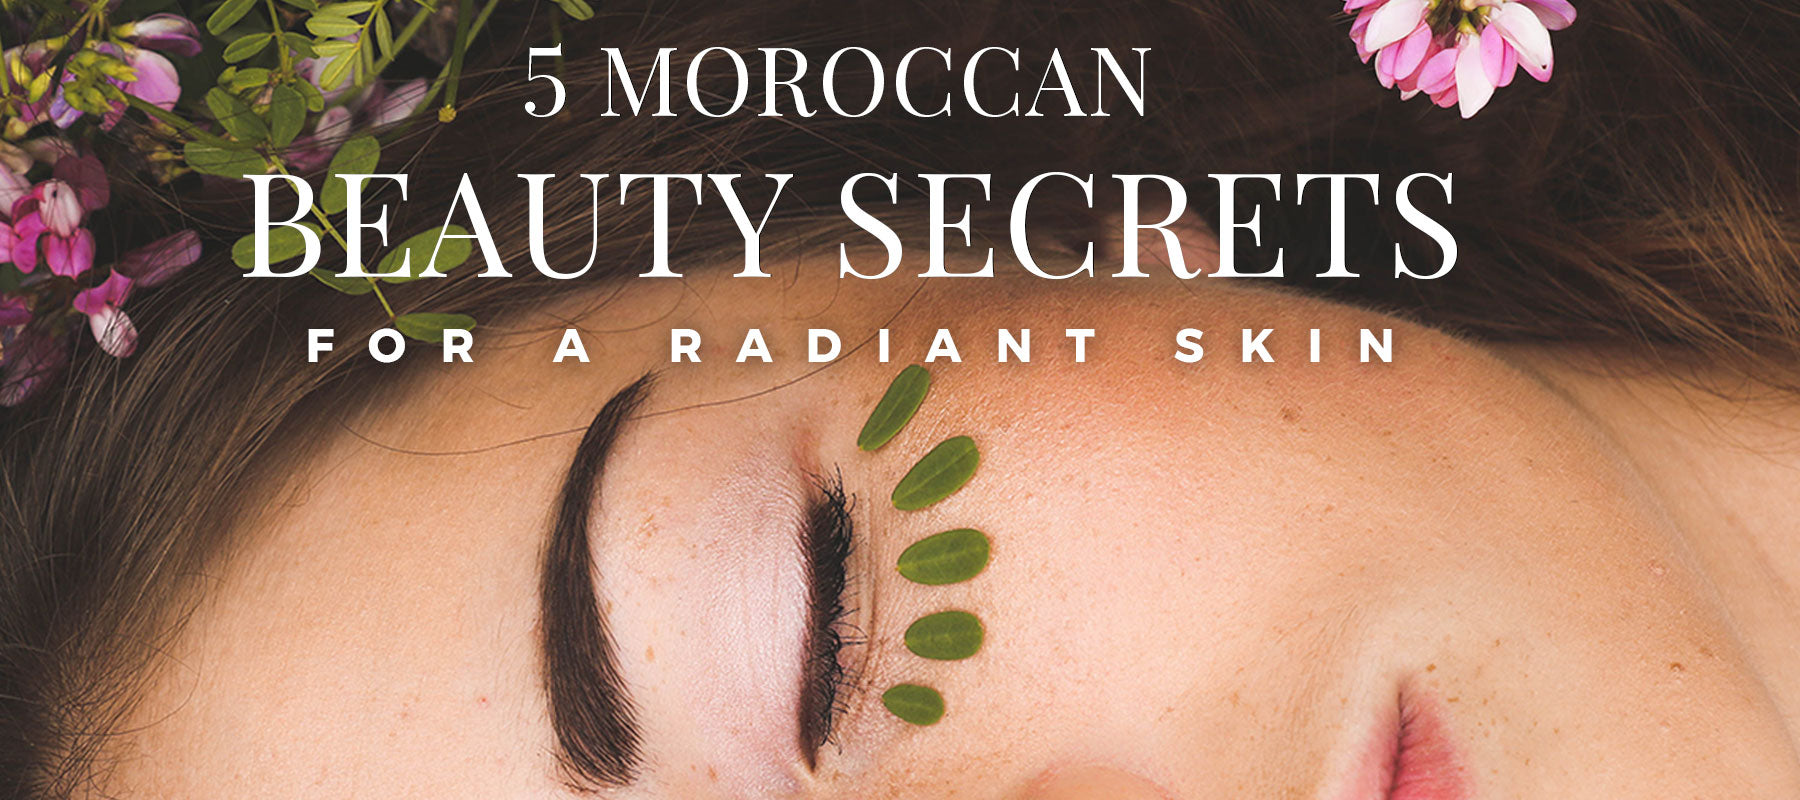 5 Moroccan Beauty Secrets for a Radiant Skin